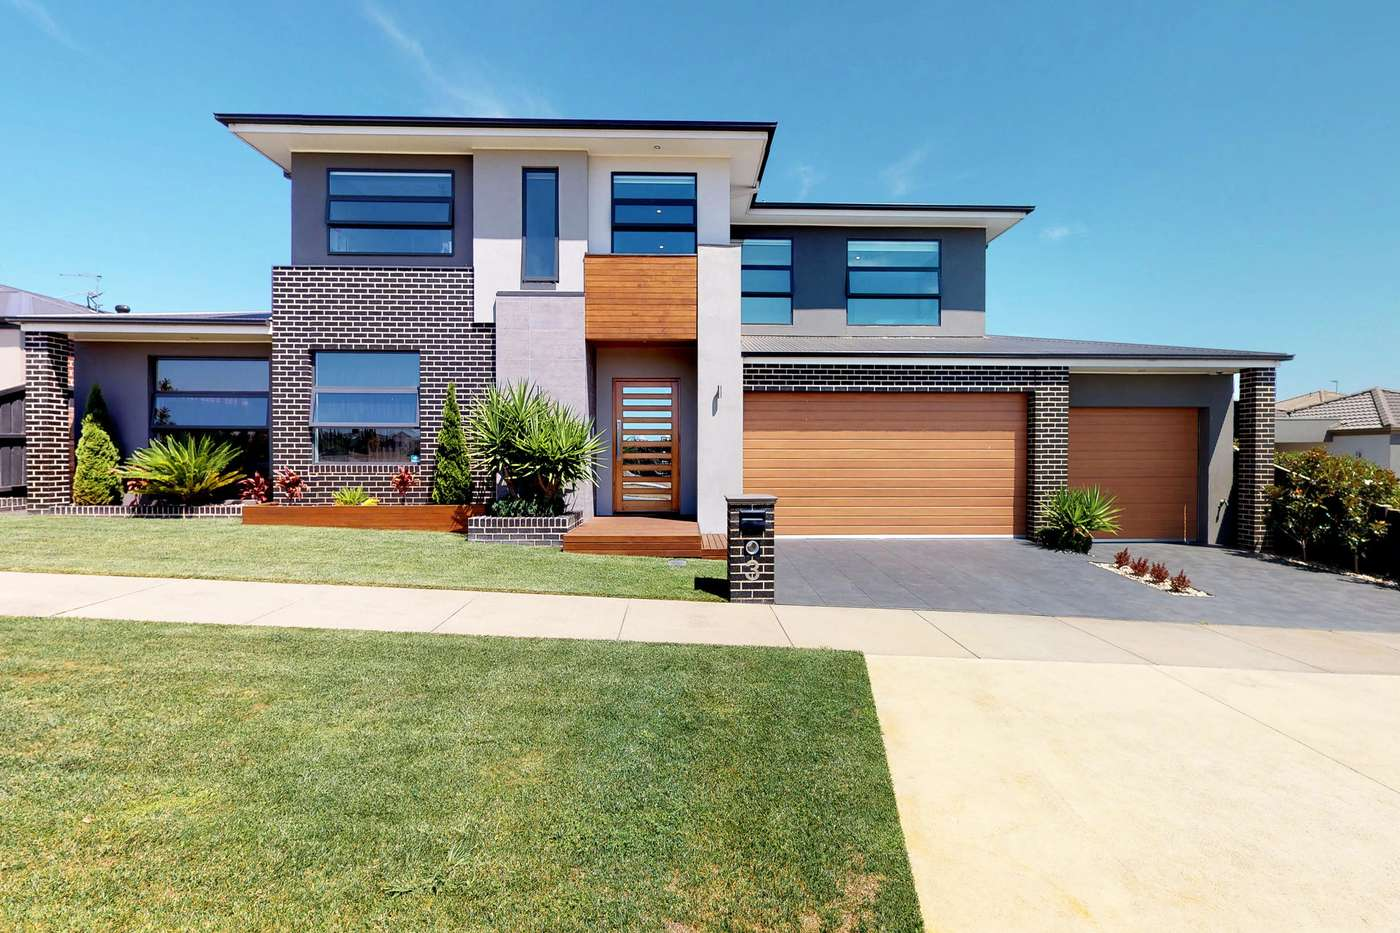 Main view of Homely house listing, 3 Bowral Way, Traralgon, VIC 3844